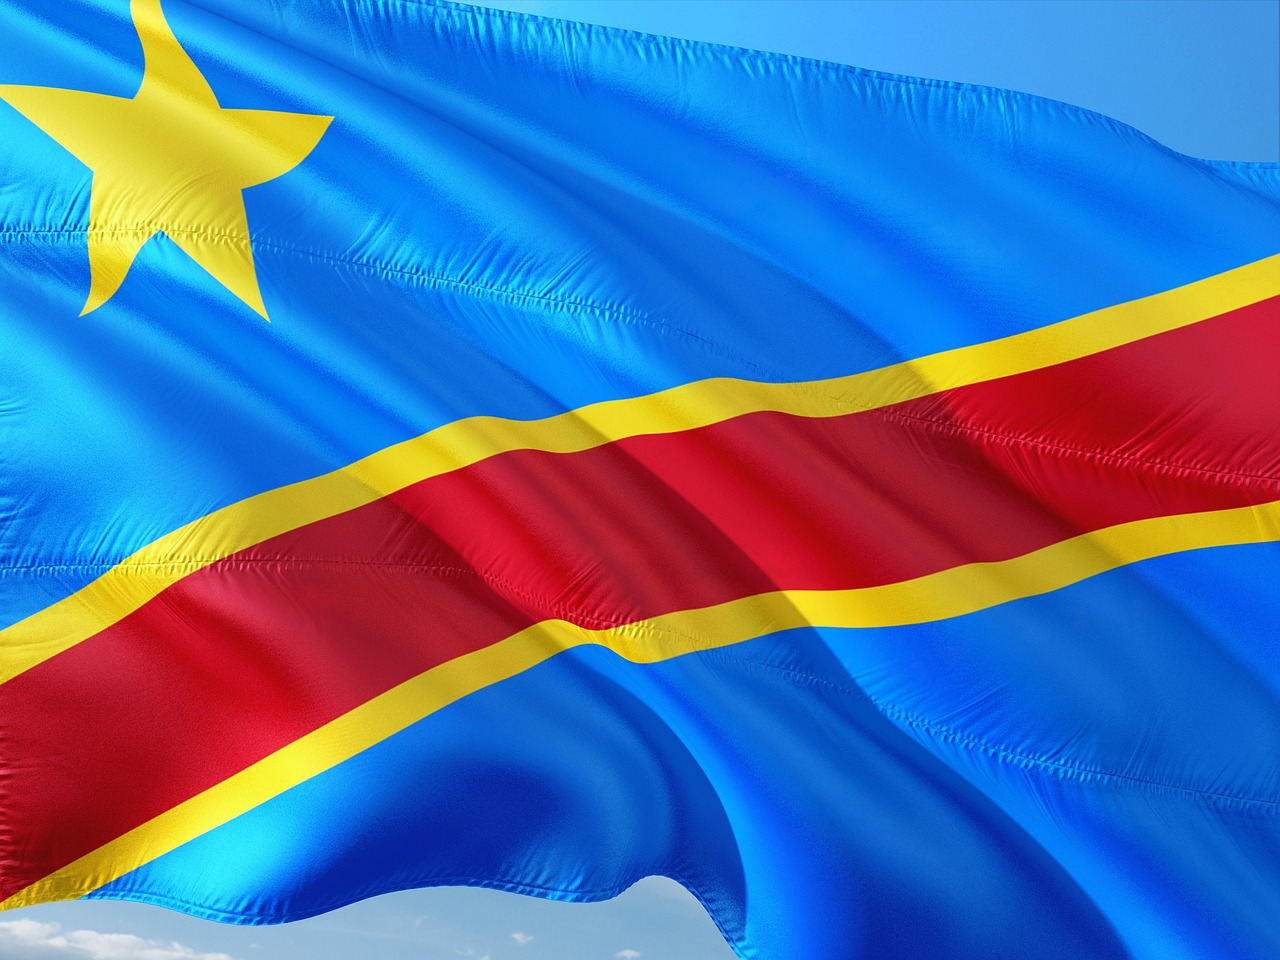 Congo lawmakers introduce bill to restrict presidential candidate eligibility requirements